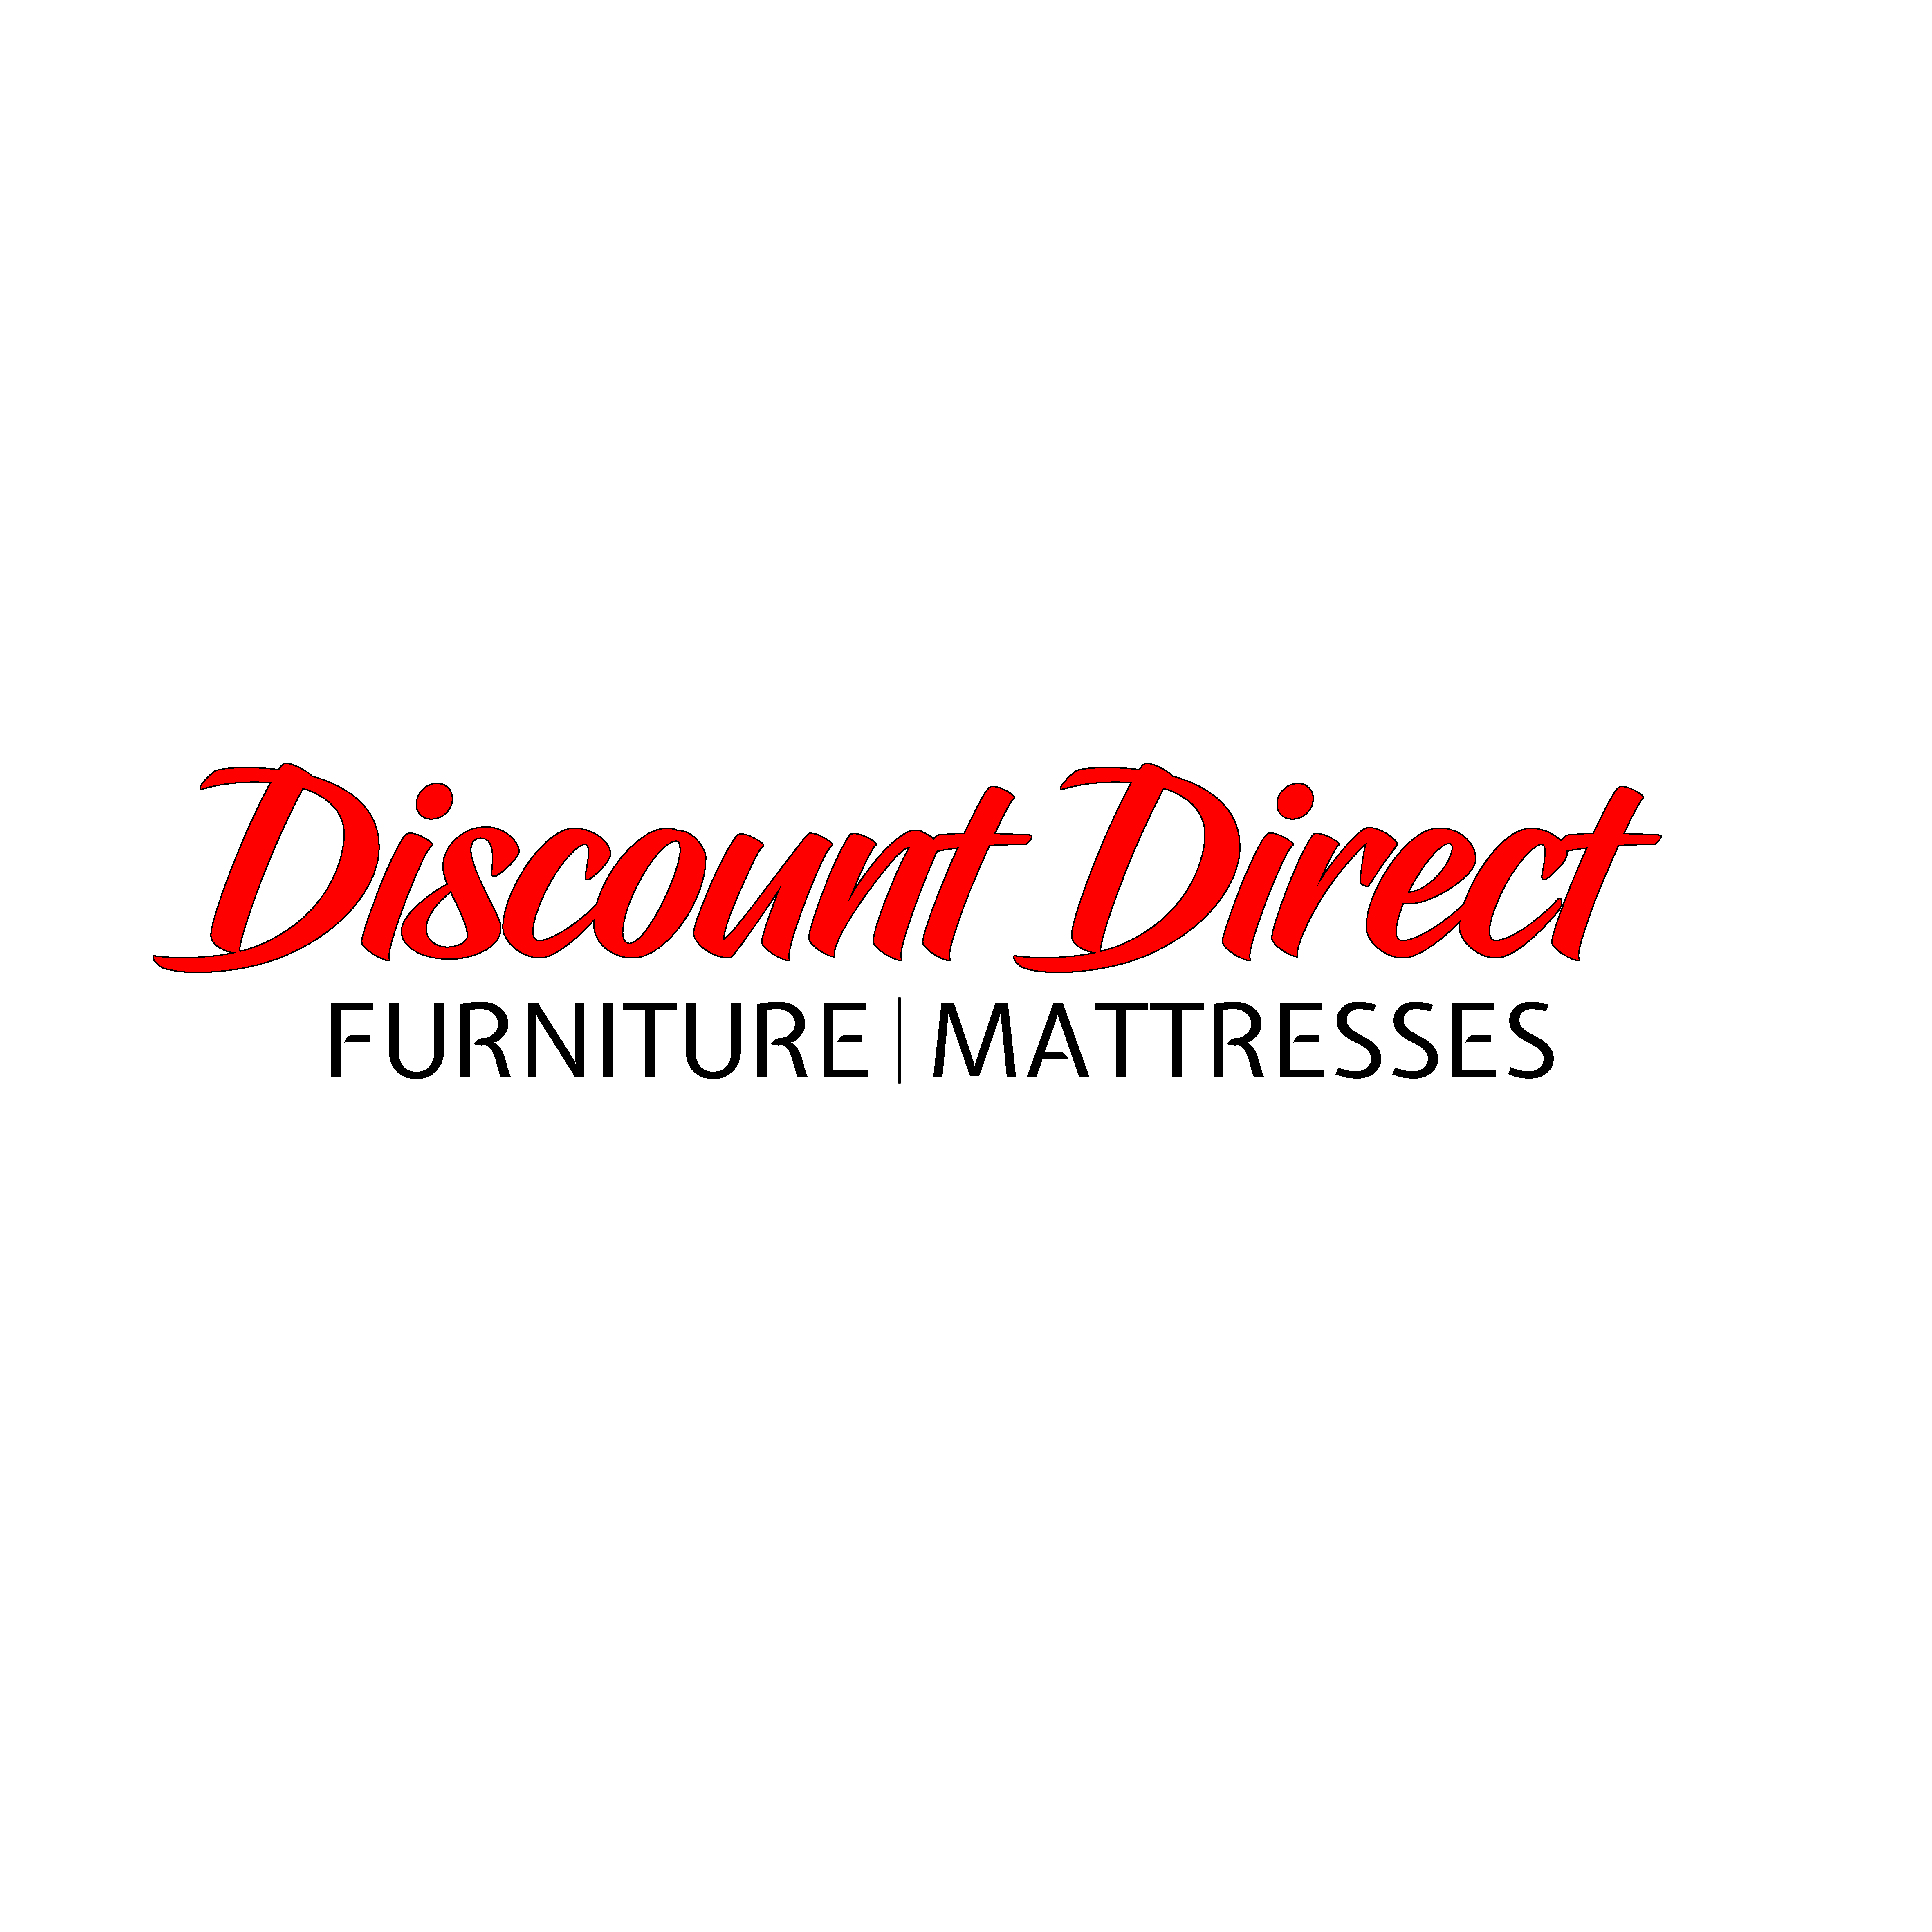 Discount Direct Furniture and Mattresses - Tukwila, WA - Furniture Stores